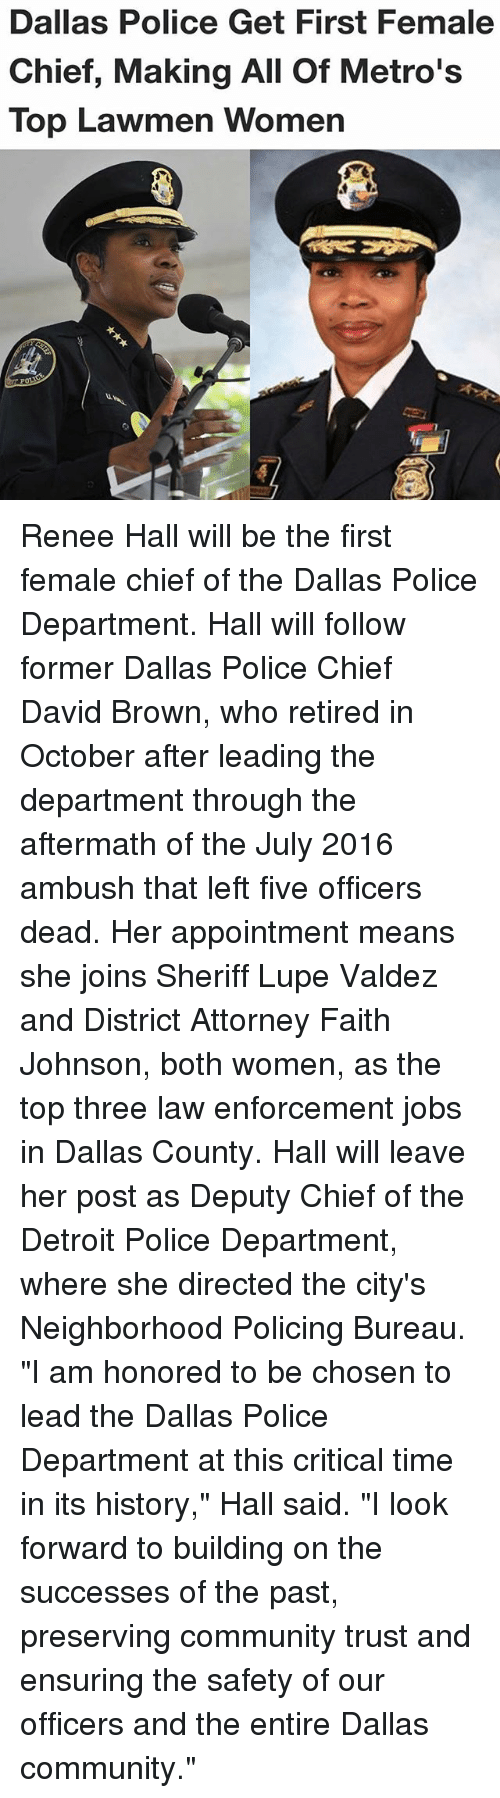 "Chiefing: Dallas Police Get First Female  Chief, Making All Of Metro's  Top Lawmen Women Renee Hall will be the first female chief of the Dallas Police Department. Hall will follow former Dallas Police Chief David Brown, who retired in October after leading the department through the aftermath of the July 2016 ambush that left five officers dead. Her appointment means she joins Sheriff Lupe Valdez and District Attorney Faith Johnson, both women, as the top three law enforcement jobs in Dallas County. Hall will leave her post as Deputy Chief of the Detroit Police Department, where she directed the city's Neighborhood Policing Bureau. ""I am honored to be chosen to lead the Dallas Police Department at this critical time in its history,"" Hall said. ""I look forward to building on the successes of the past, preserving community trust and ensuring the safety of our officers and the entire Dallas community."""